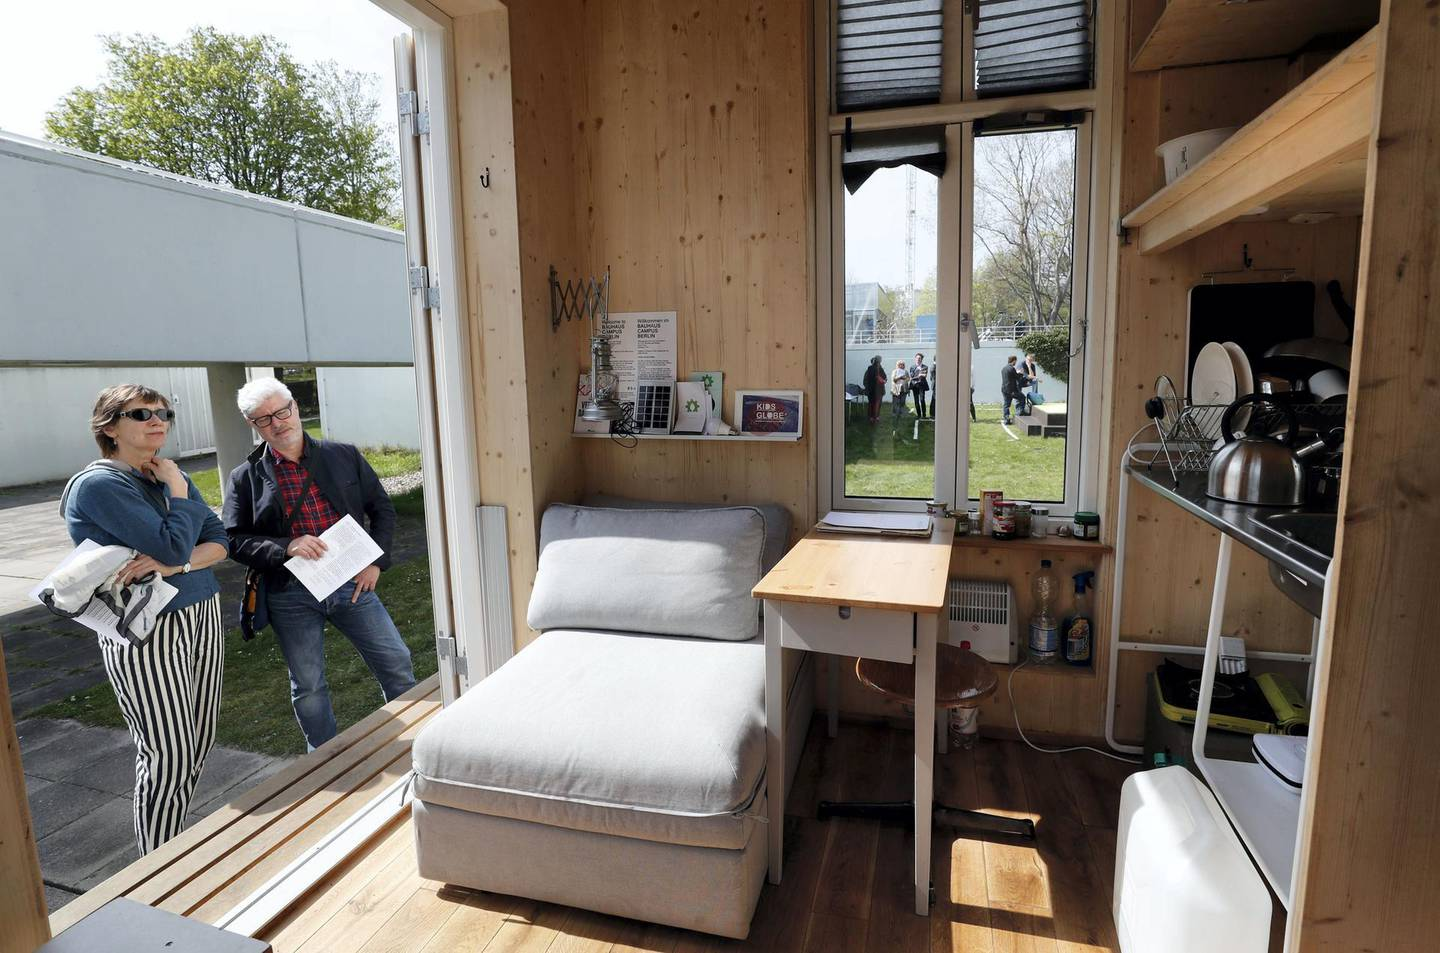 Mandatory Credit: Photo by Felipe Trueba/EPA/Shutterstock (8594904a)People look at the interior of a home unit, a small mobile living space, part of a project of the Tiny House University at the Bauhaus Archive Museum of Design in Berlin, Germany, 10 April 2017. The Bauhaus Campus is an artistic experiment composed of 'Tiny Houses', mobile architectural structures no larger than a parking space, approaching topics such as minimal living space, co-working or study programs for refugees.Tiny House project in Berlin, Germany - 10 Apr 2017